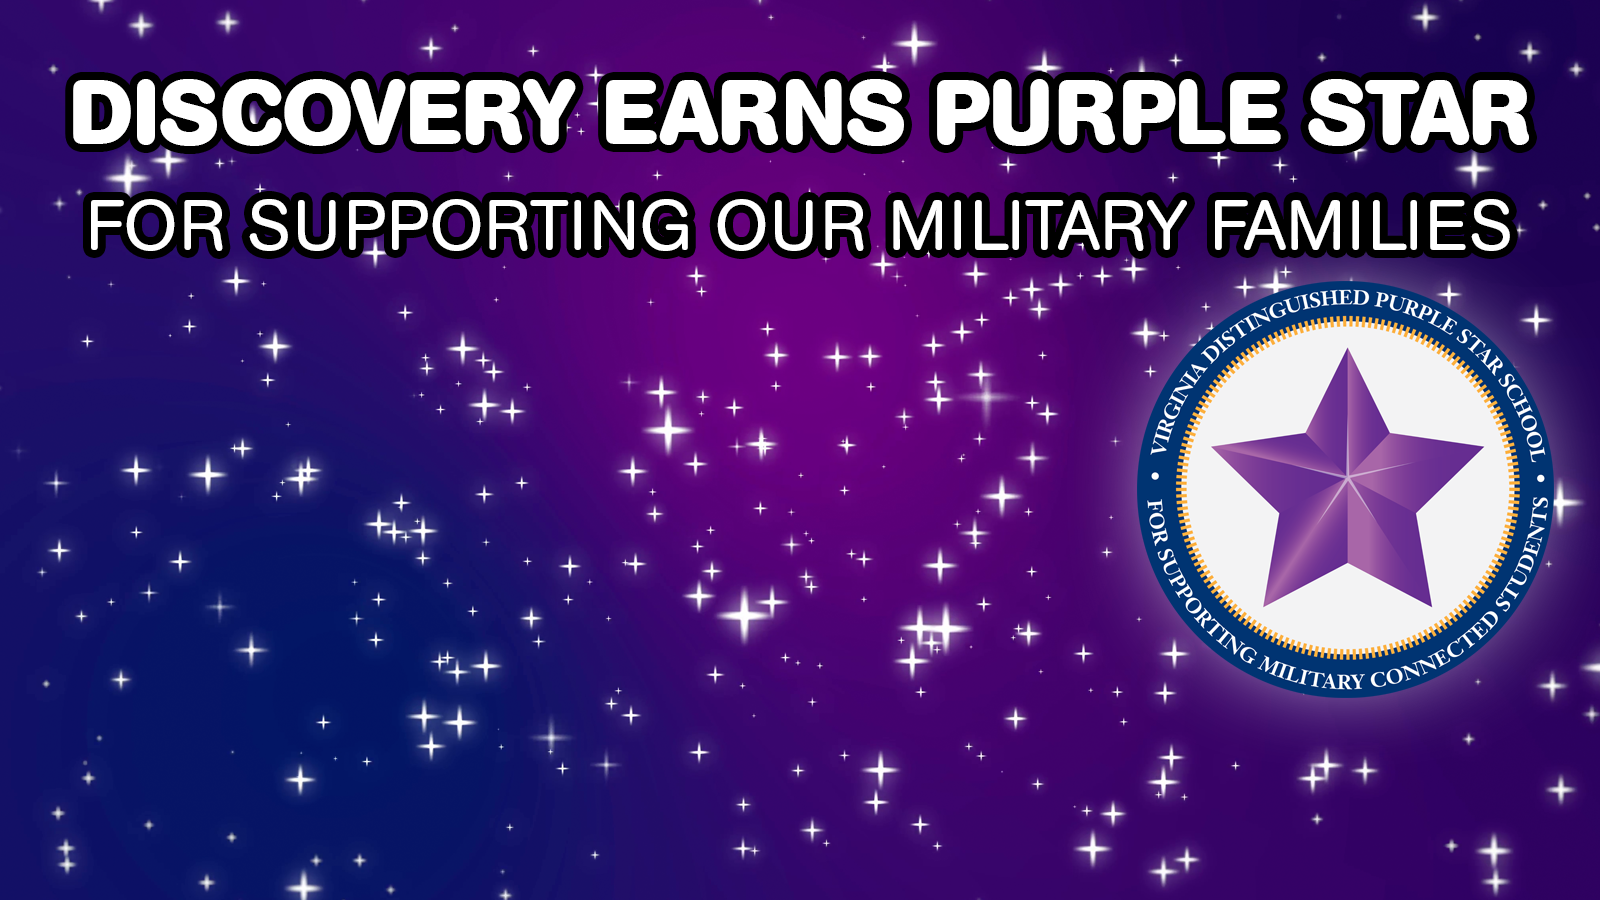 Purple Star Support for Military Families